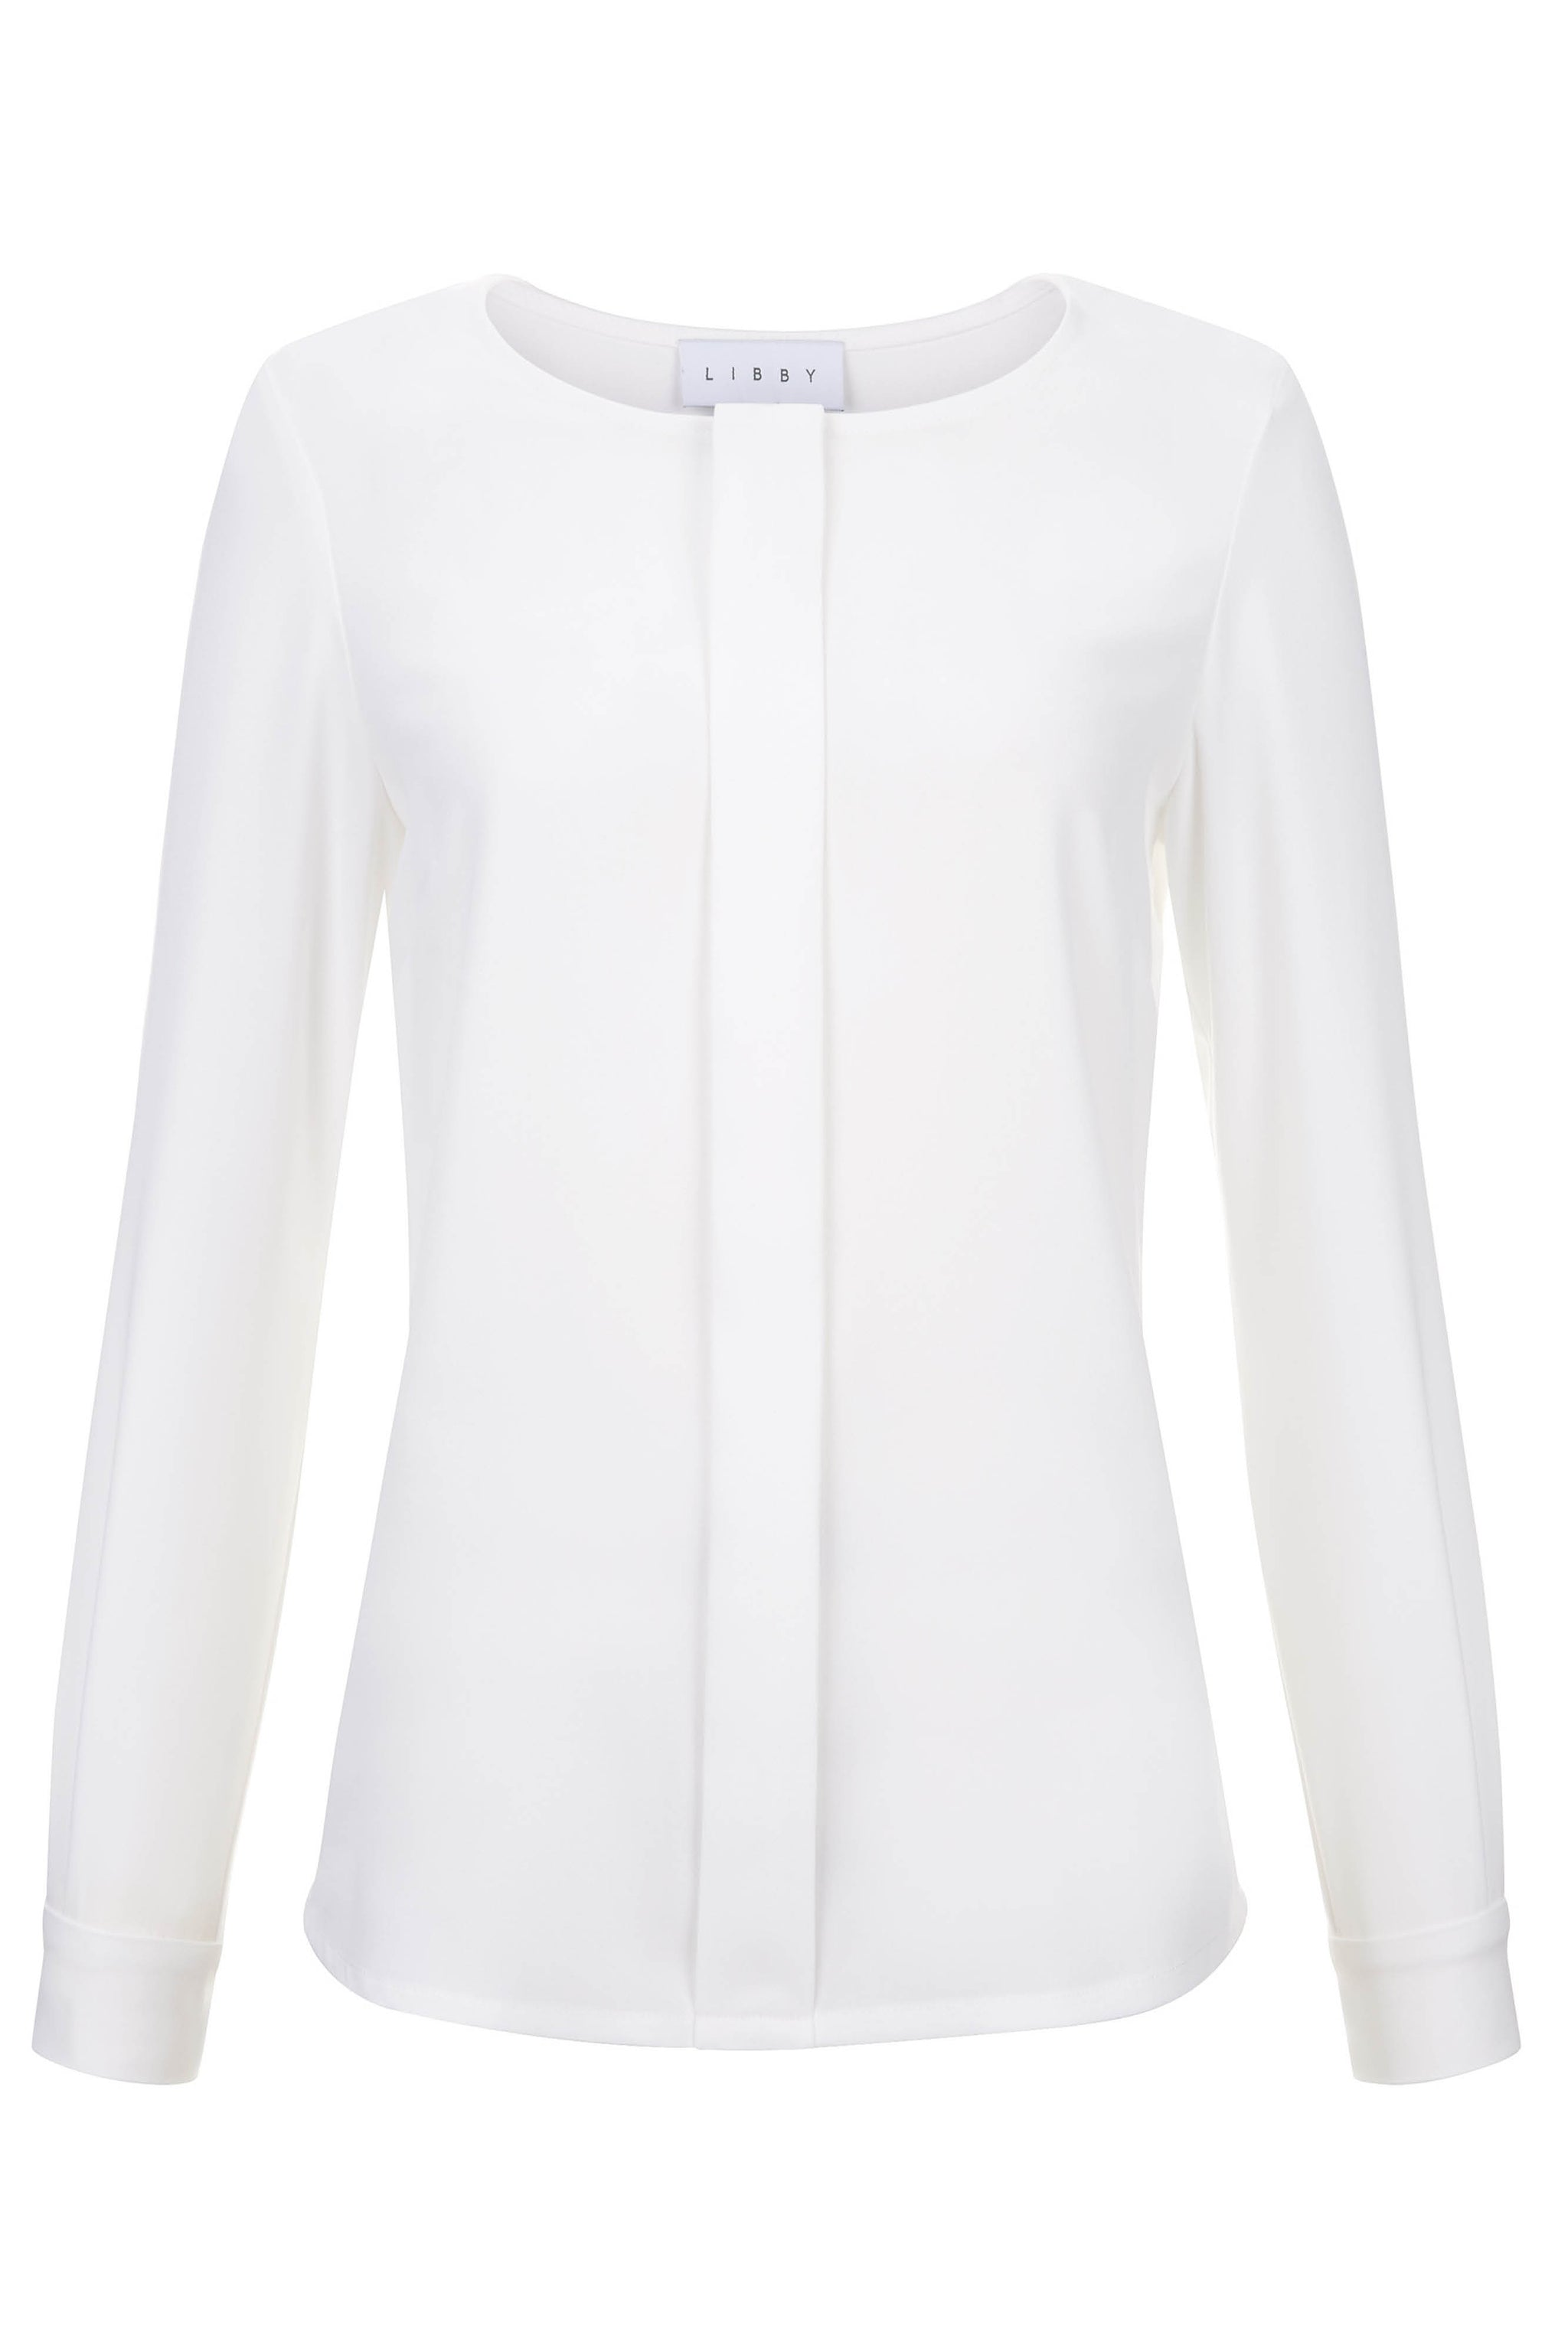 Wallis White Top